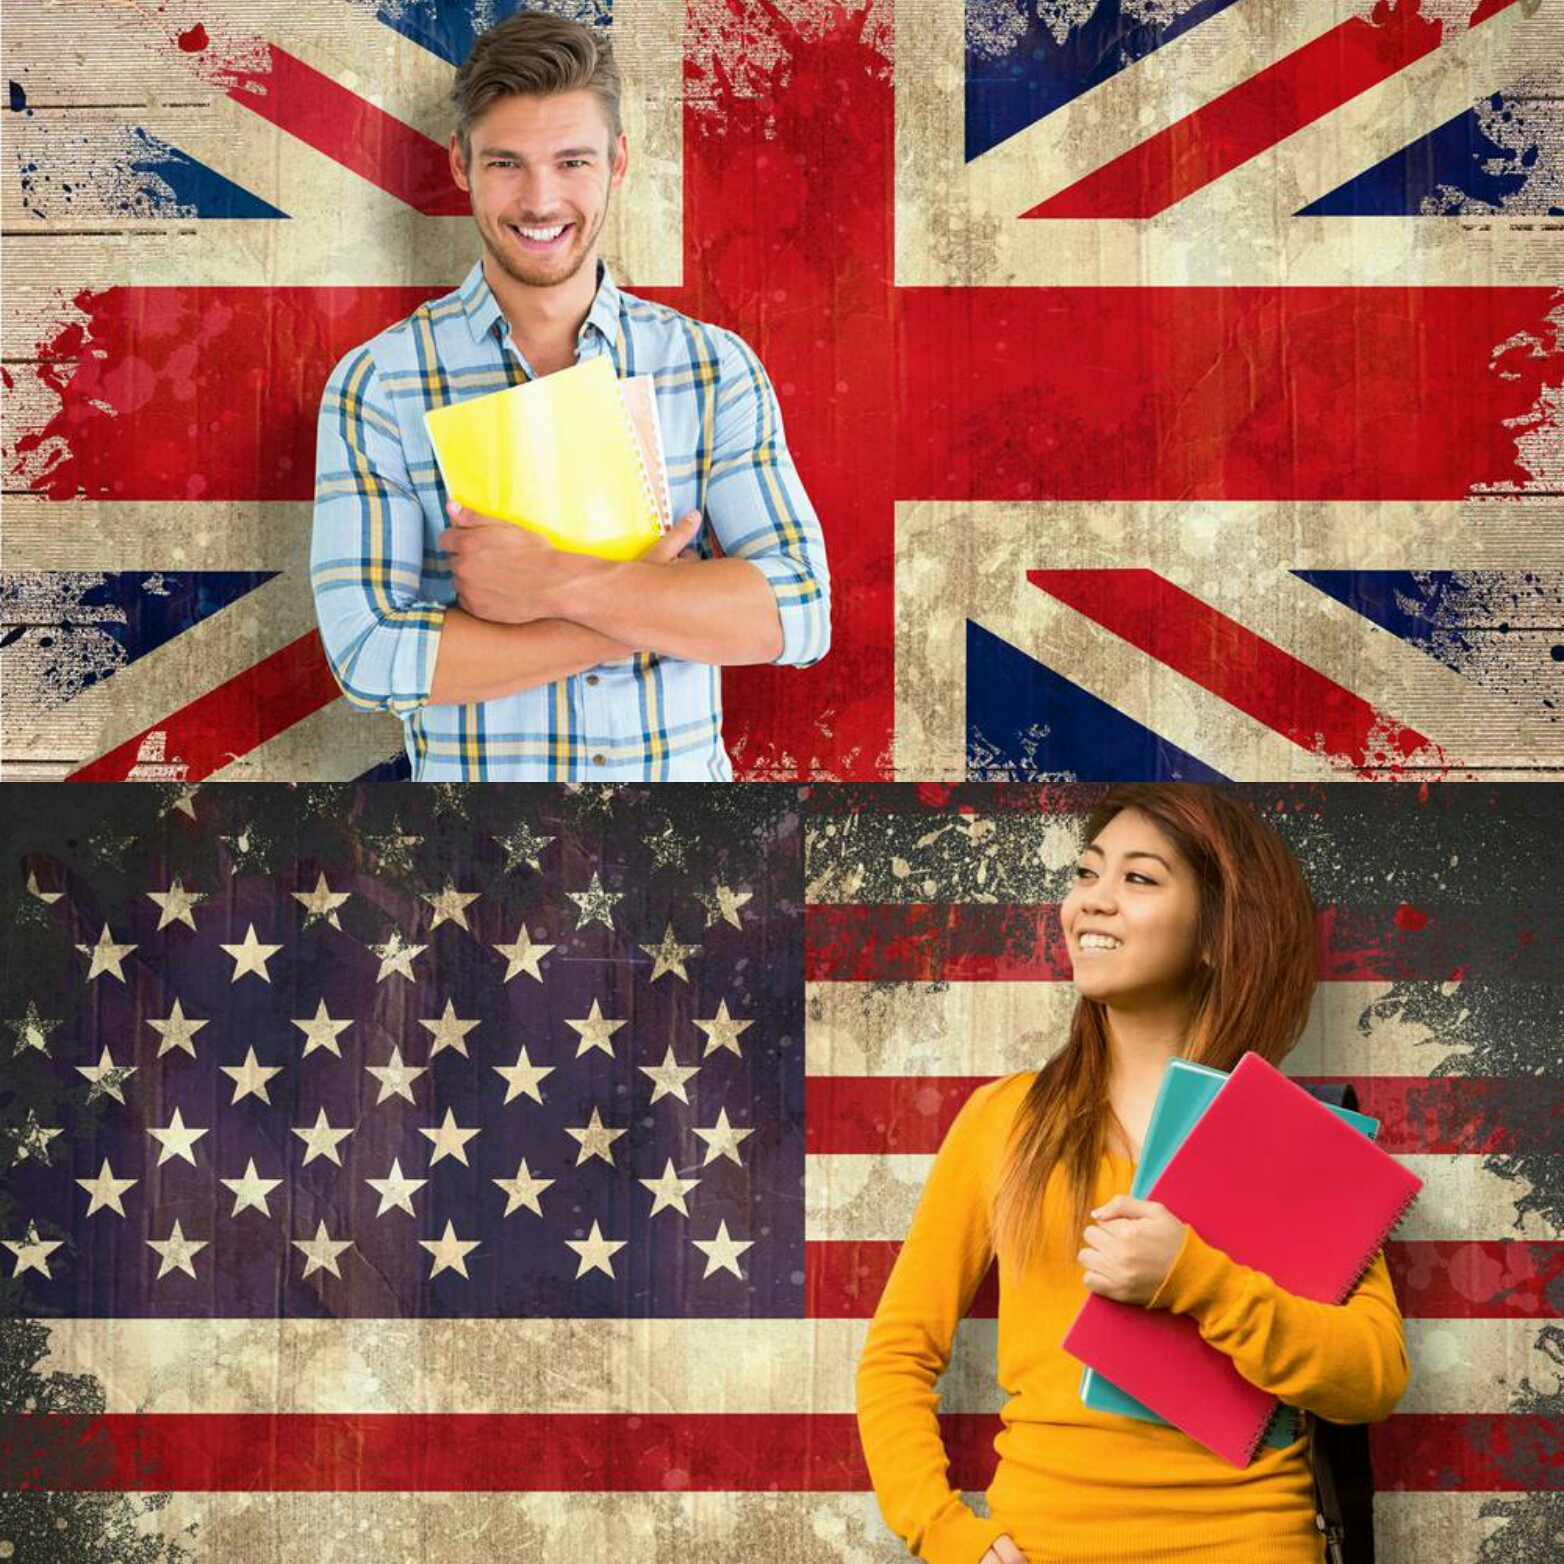 THE UNITED KINGDOM OR THE UNITED STATES : Let's help you make a choice